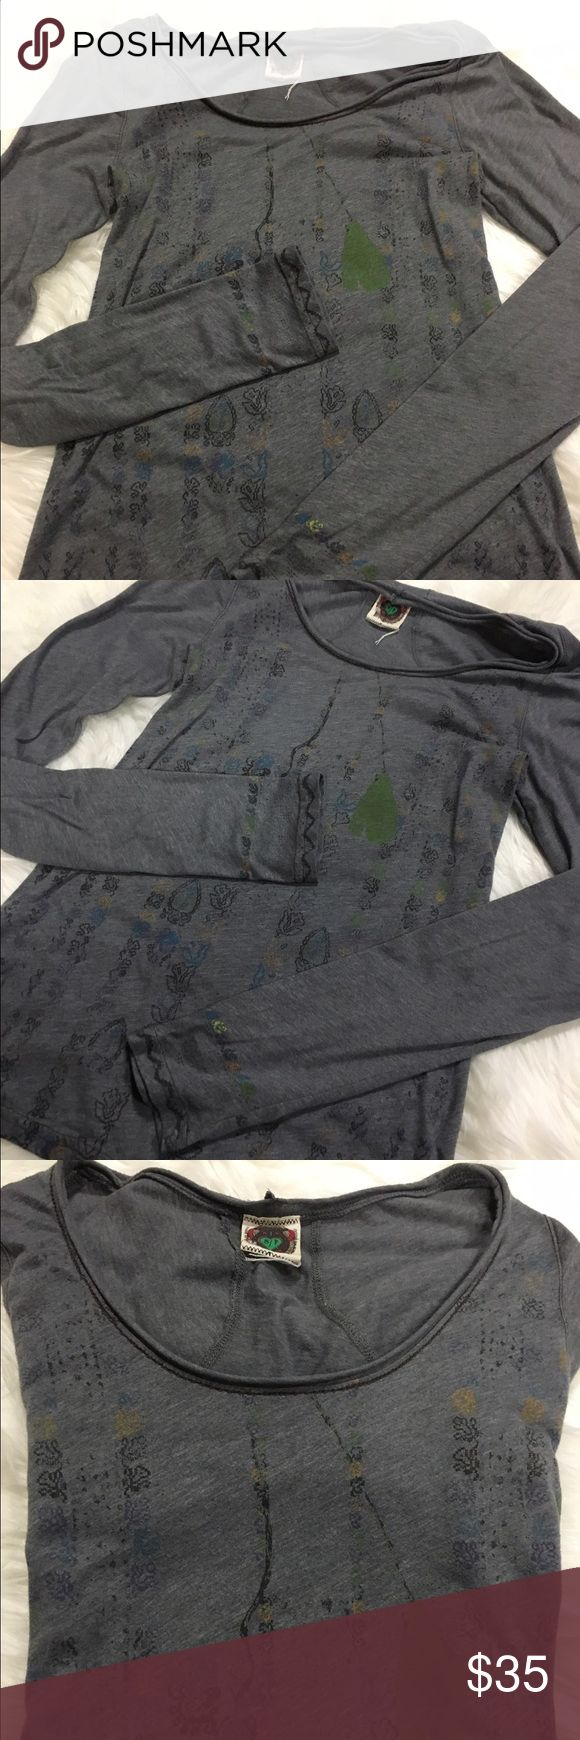 "Free People Henley Soft and broken in Free People henley.   Grey with a cute design on the front and the bottom of the sleeves.   No flaws, rips, or tears!   21"" sleeves, 14"" bust, 24"" length (approximate).  Throw this on with your favorite pair of lounge pants and you're all set for binge watching This Is Us.  Spoiler alert.  Get tissue.  A lot of it.  And wear waterproof mascara.   I wept like a baby. Free People Tops Tees - Long Sleeve"